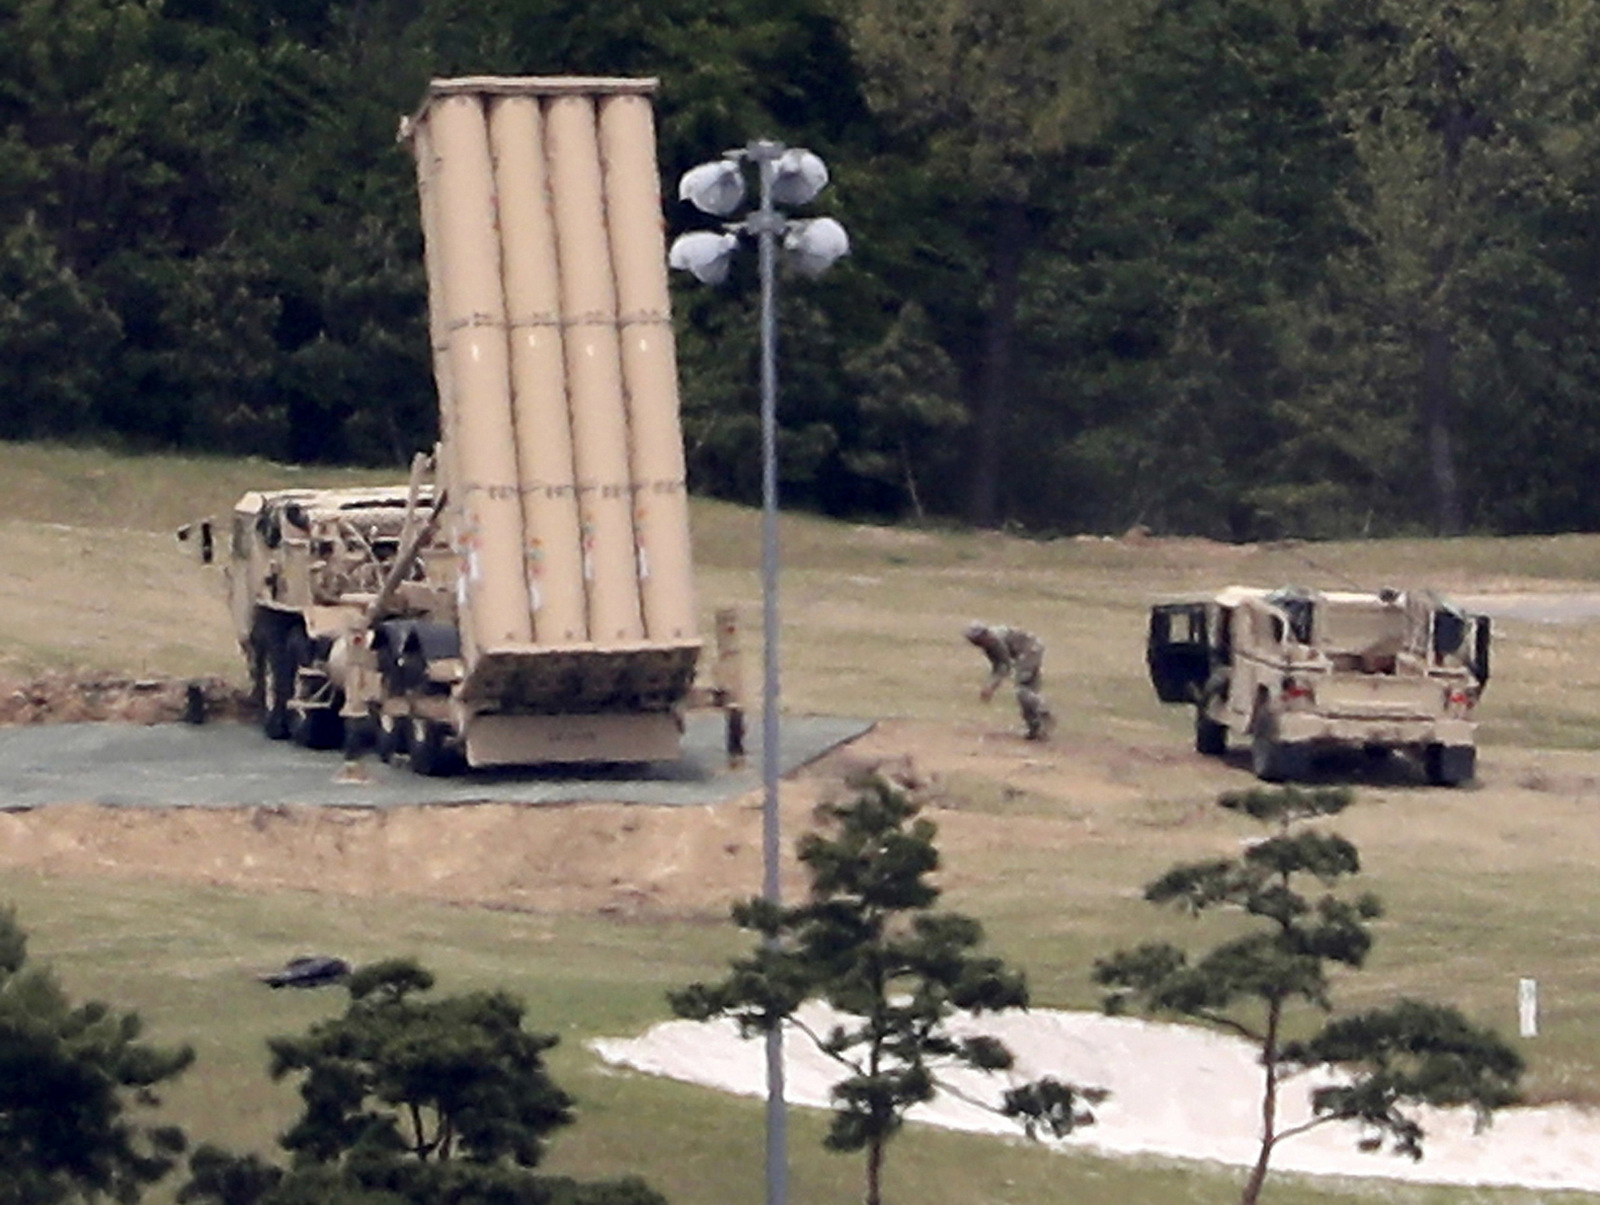 A U.S. missile defense system called Terminal High Altitude Area Defense, or THAAD, is installed on a golf course in Seongju, South Korea. (Kim Jun-beom/Yonhap via AP)